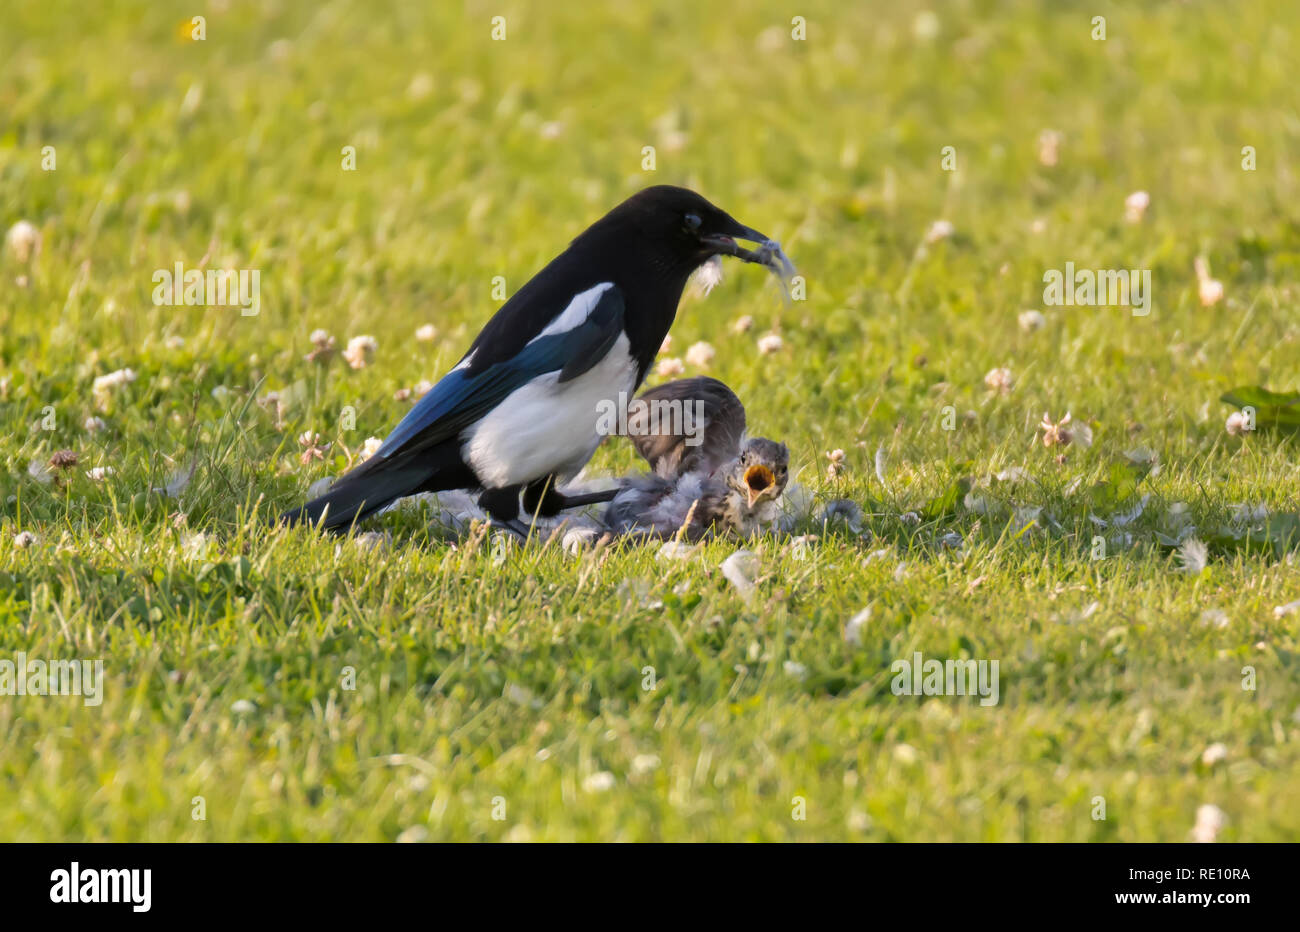 magpie preying on young fieldfare - Stock Image